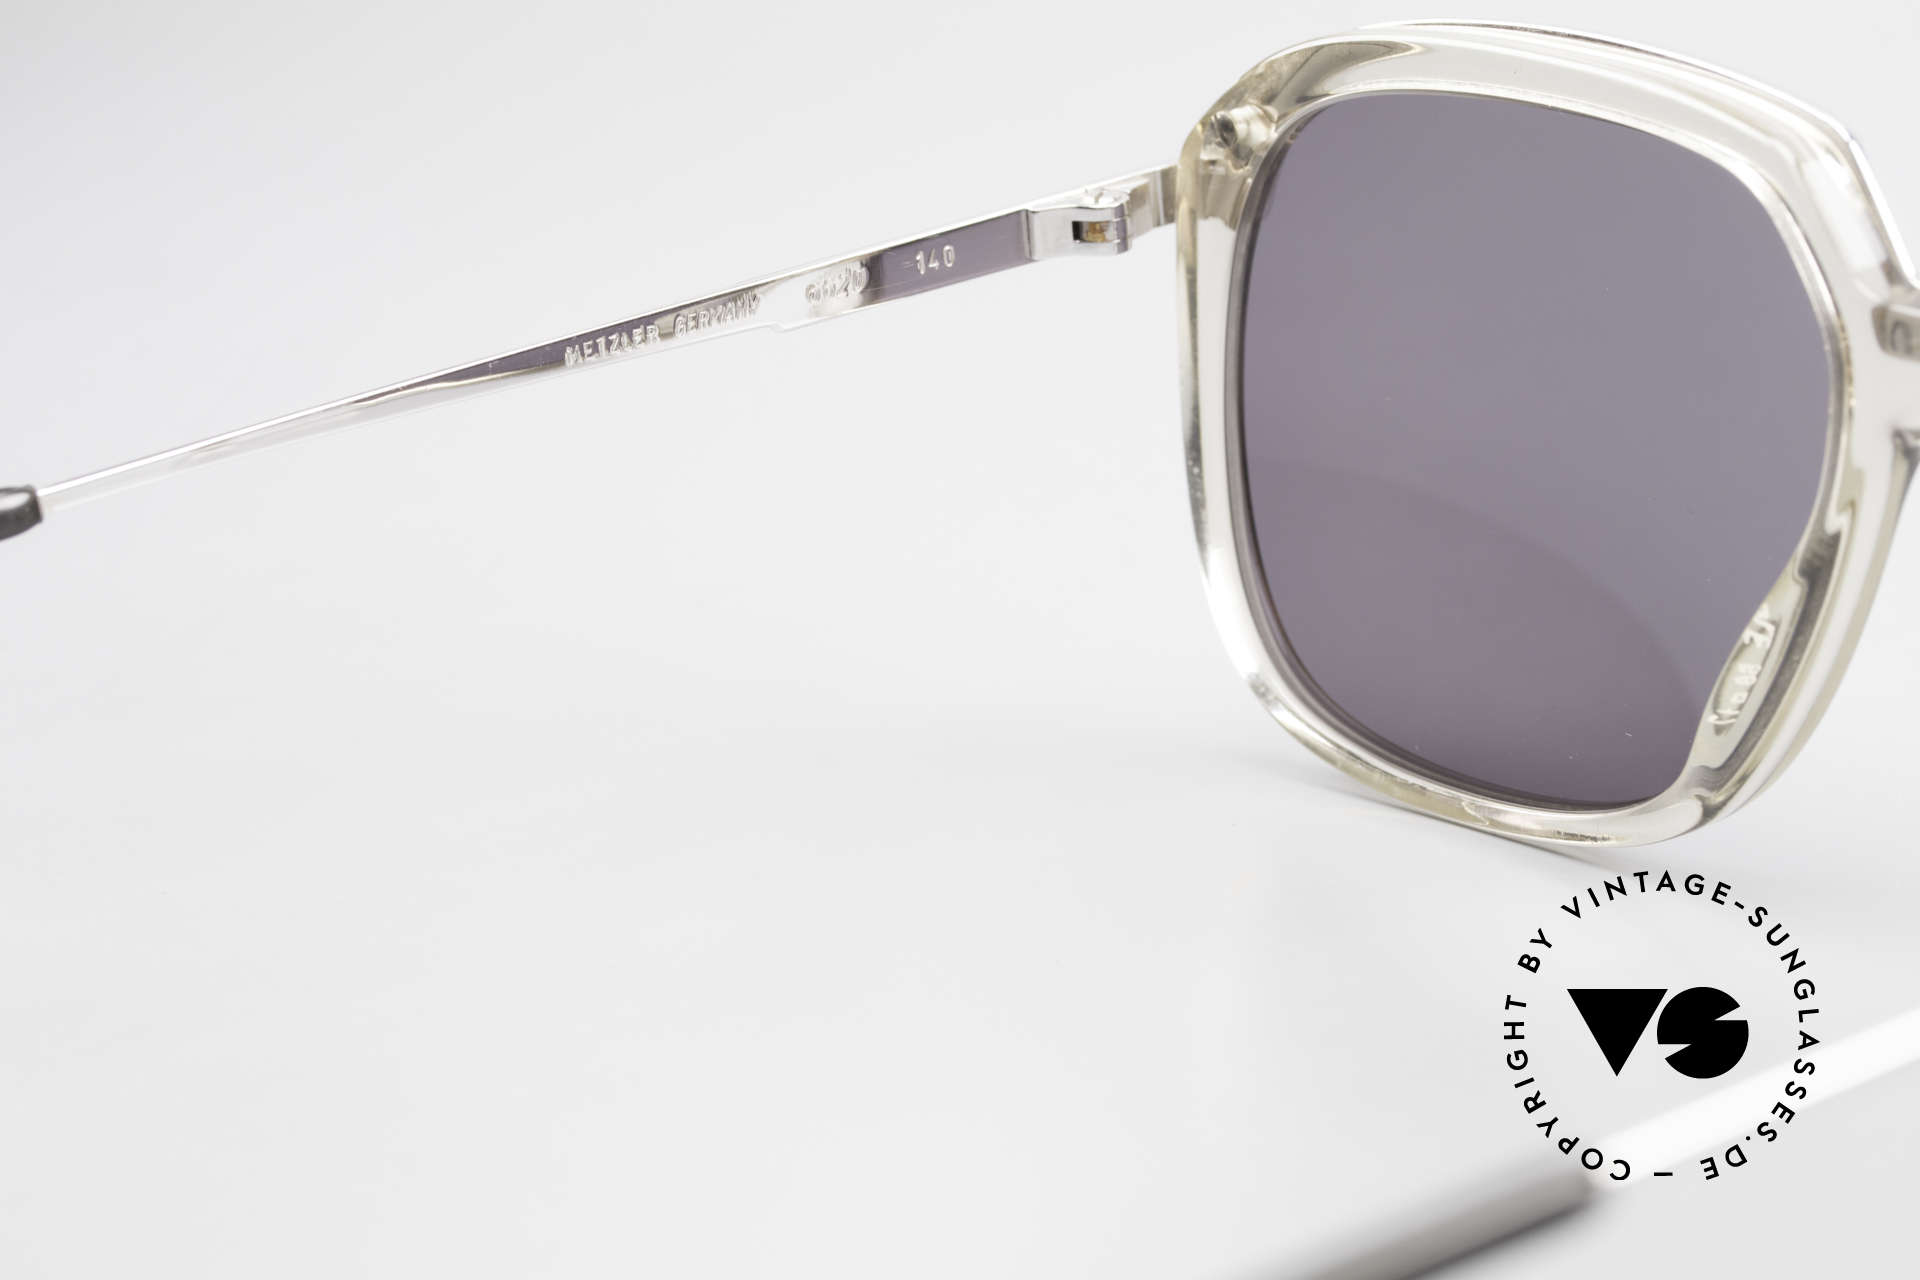 Metzler 6620 True Vintage 80's Sunglasses, the sun lenses (100% UV) can be replaced optionally, Made for Men